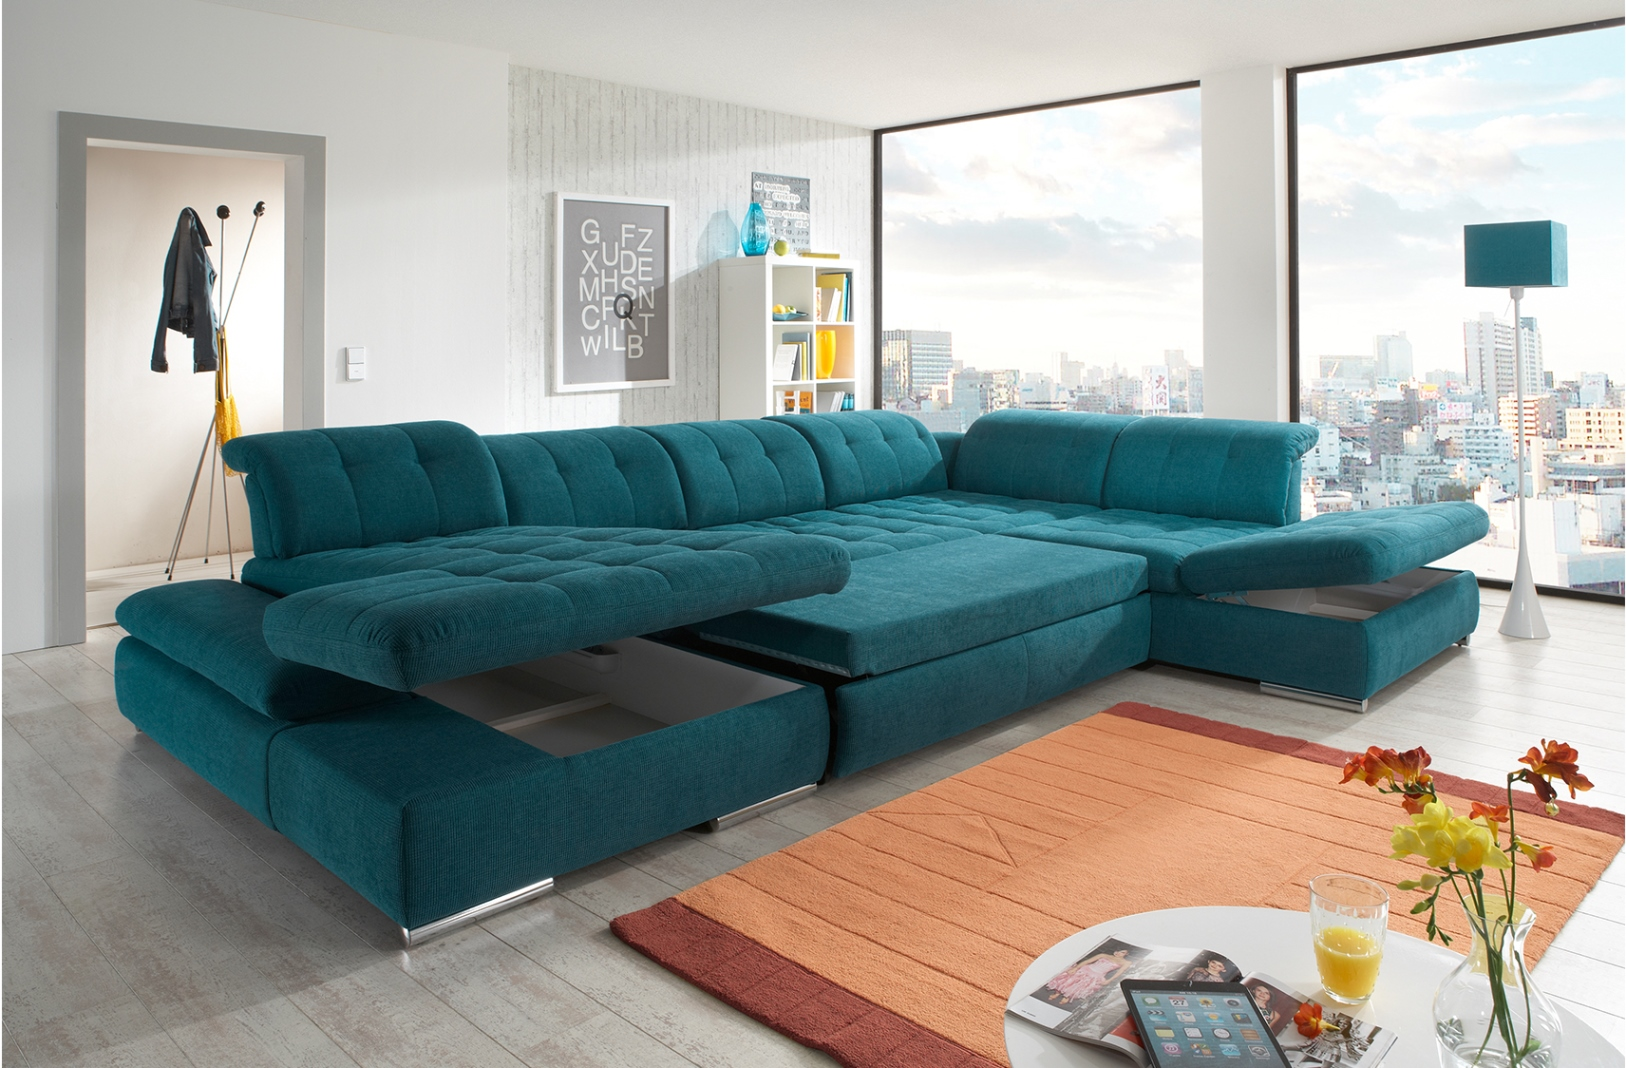 ... Alpine-Sectional-Sofa-2 ... : sectional couch bed - Sectionals, Sofas & Couches